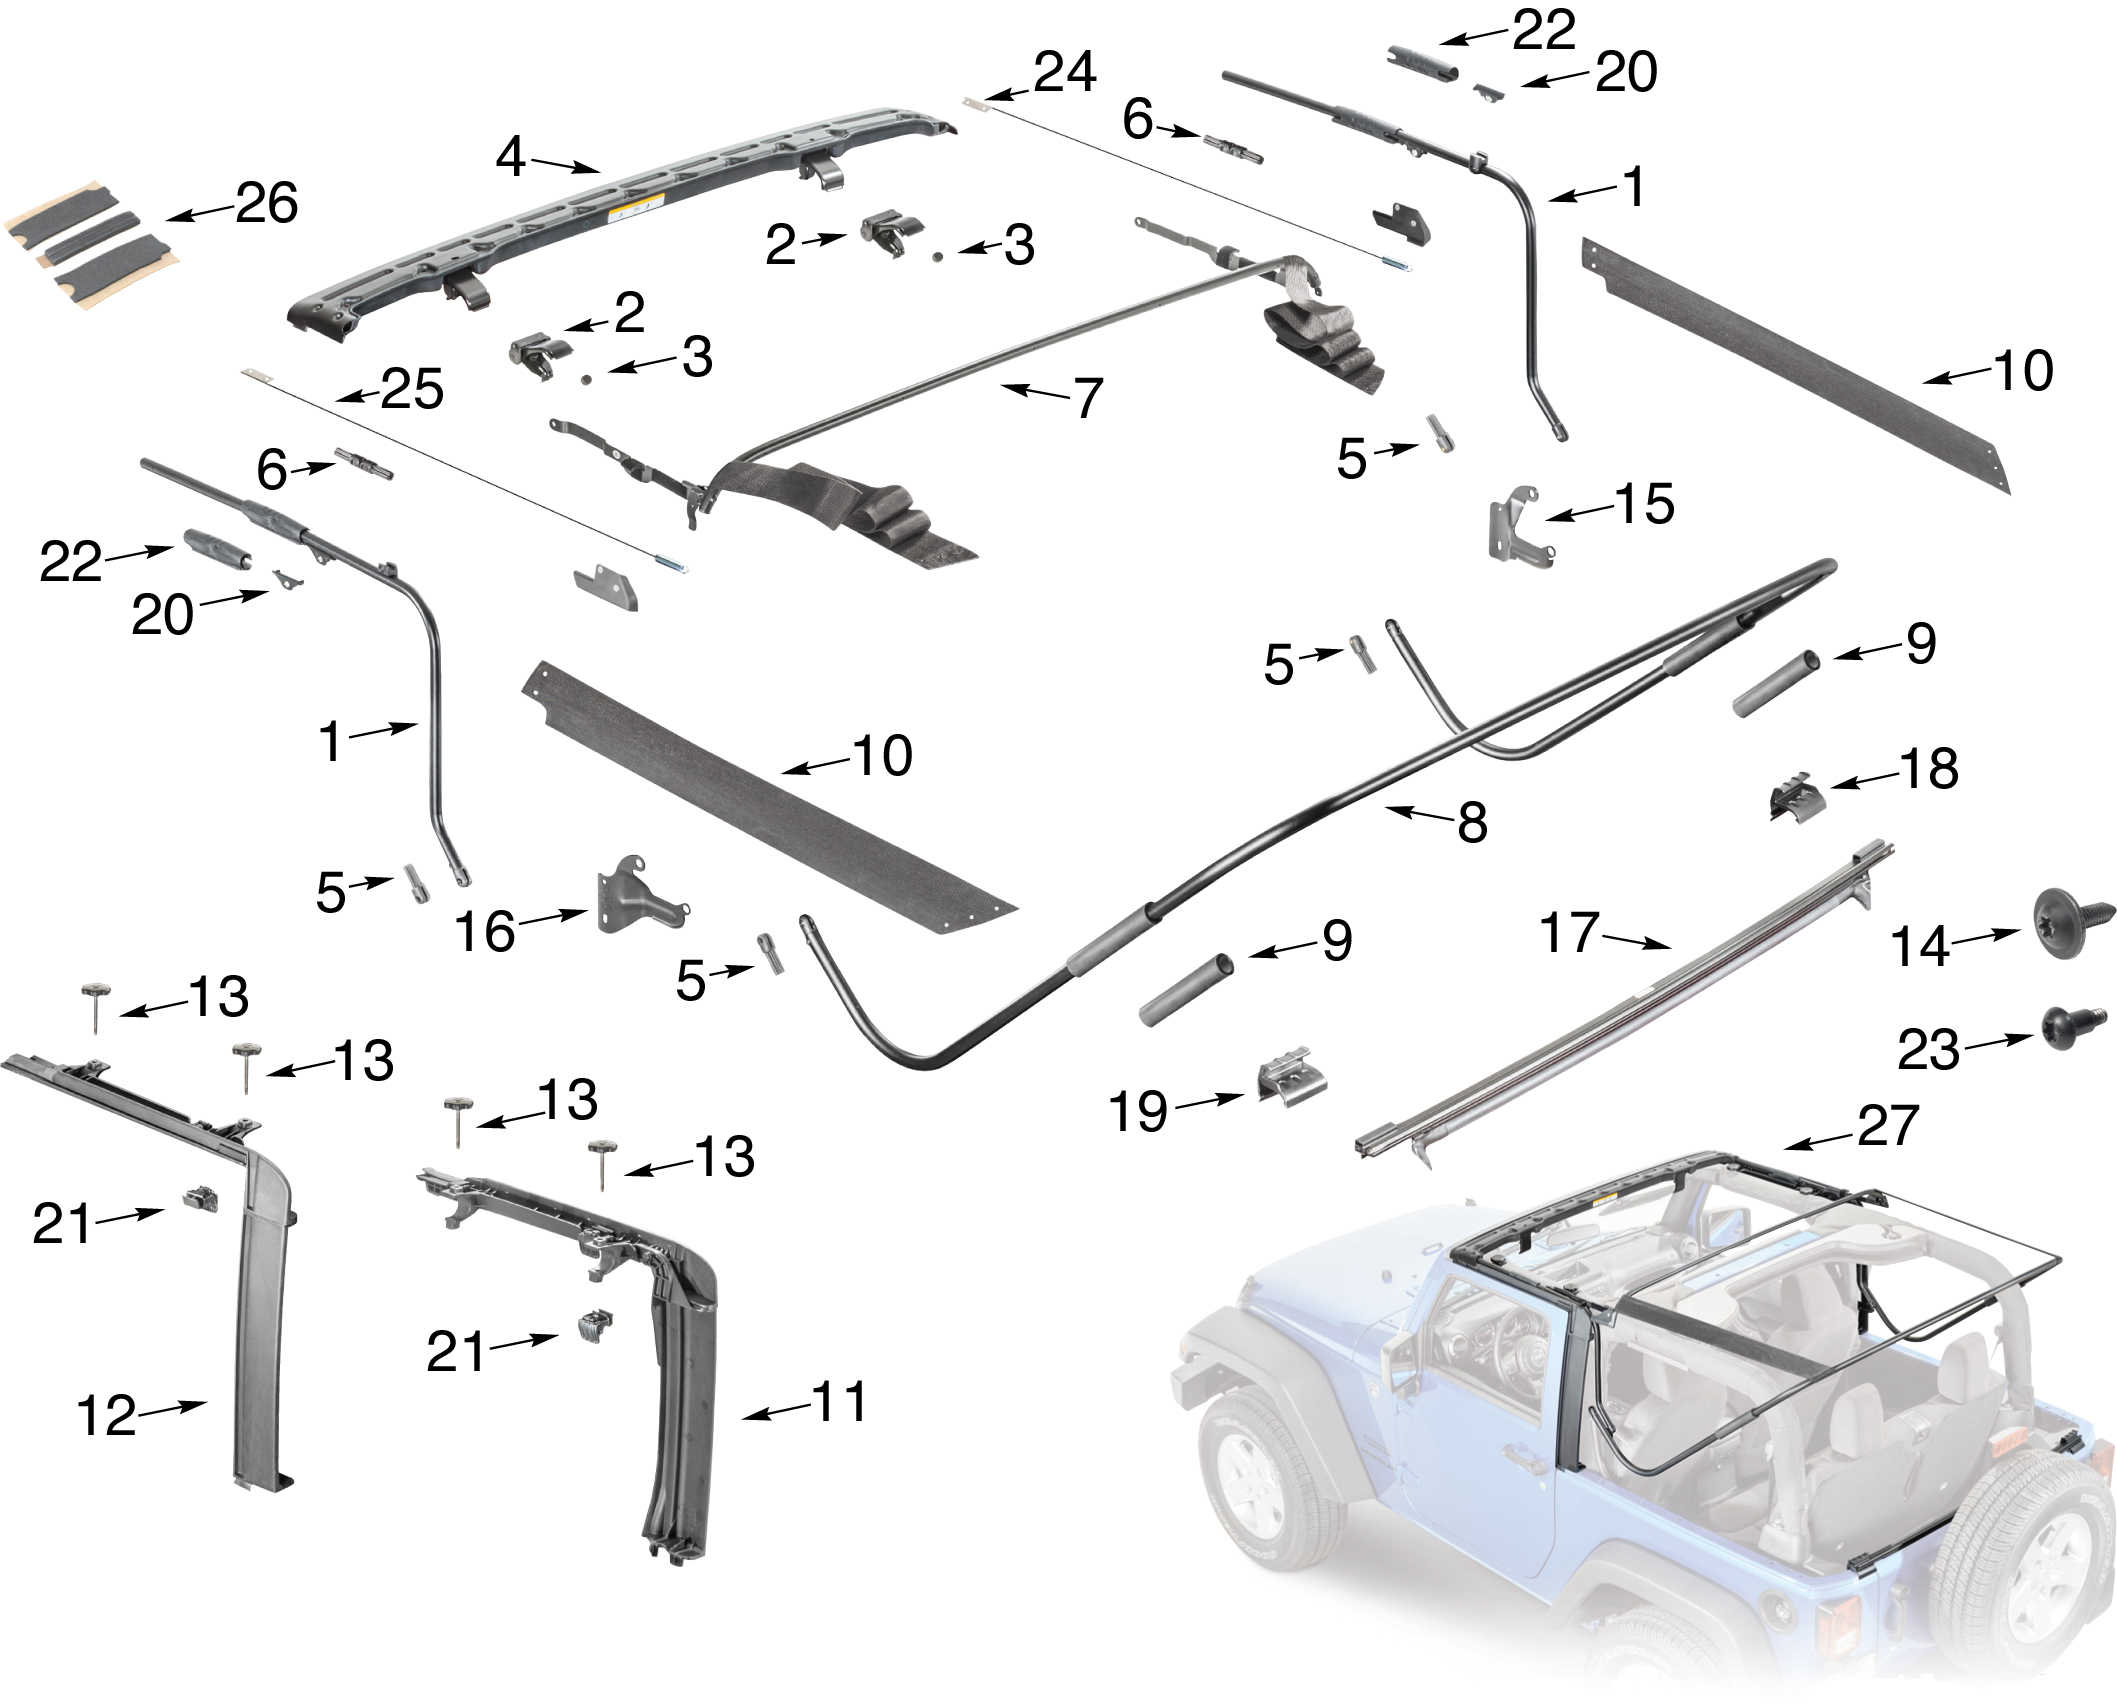 2007 jeep wrangler parts diagram how to wire a 3 way dimmer switch diagrams 2015 oem free engine image